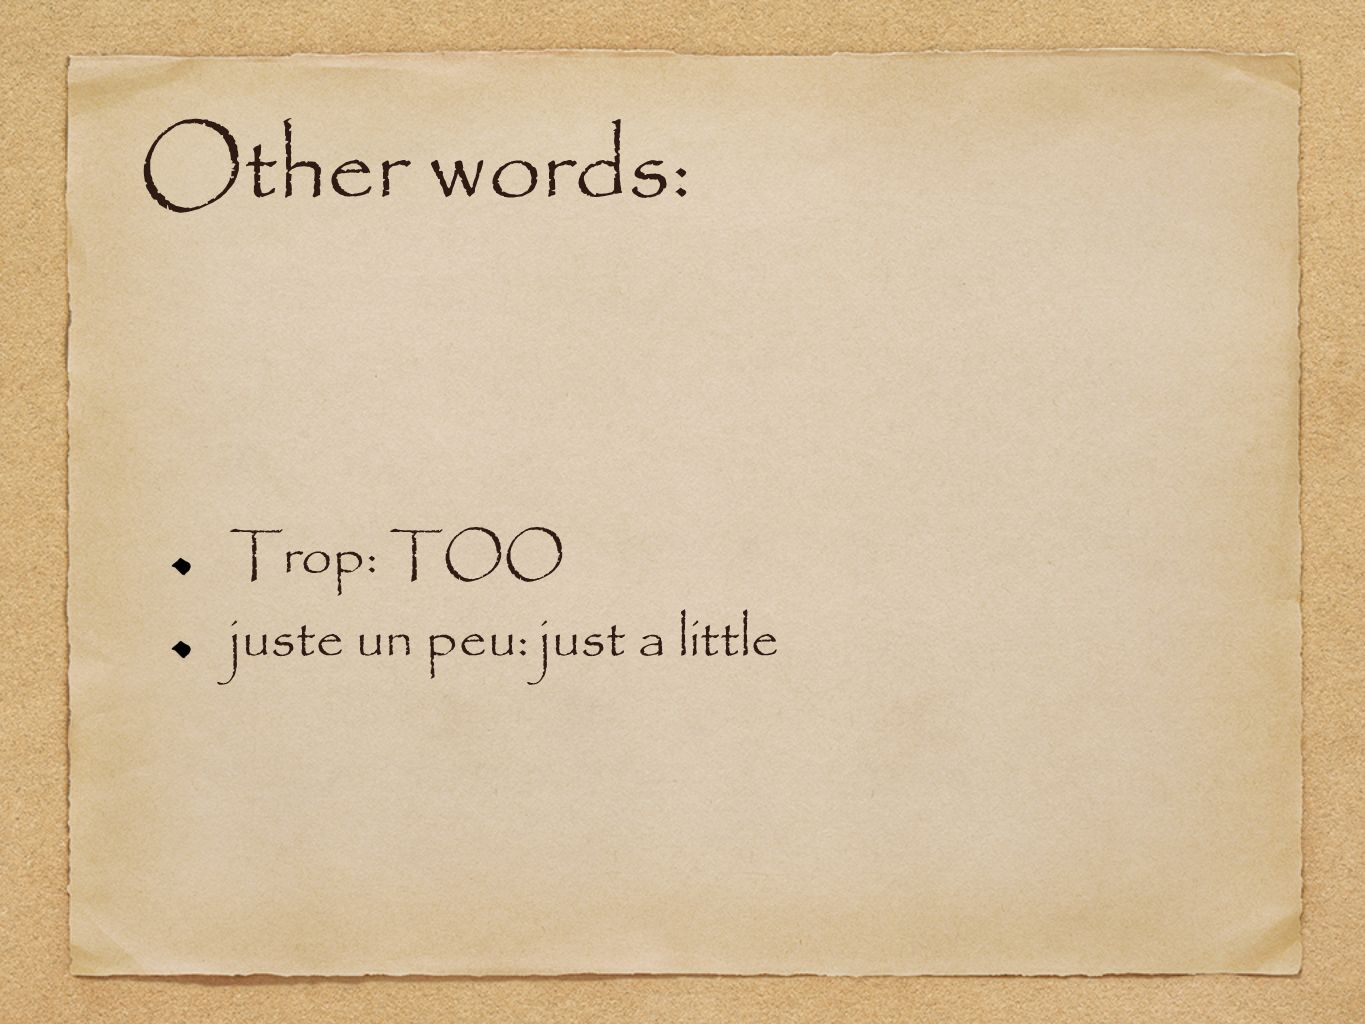 Other words: Trop: TOO juste un peu: just a little